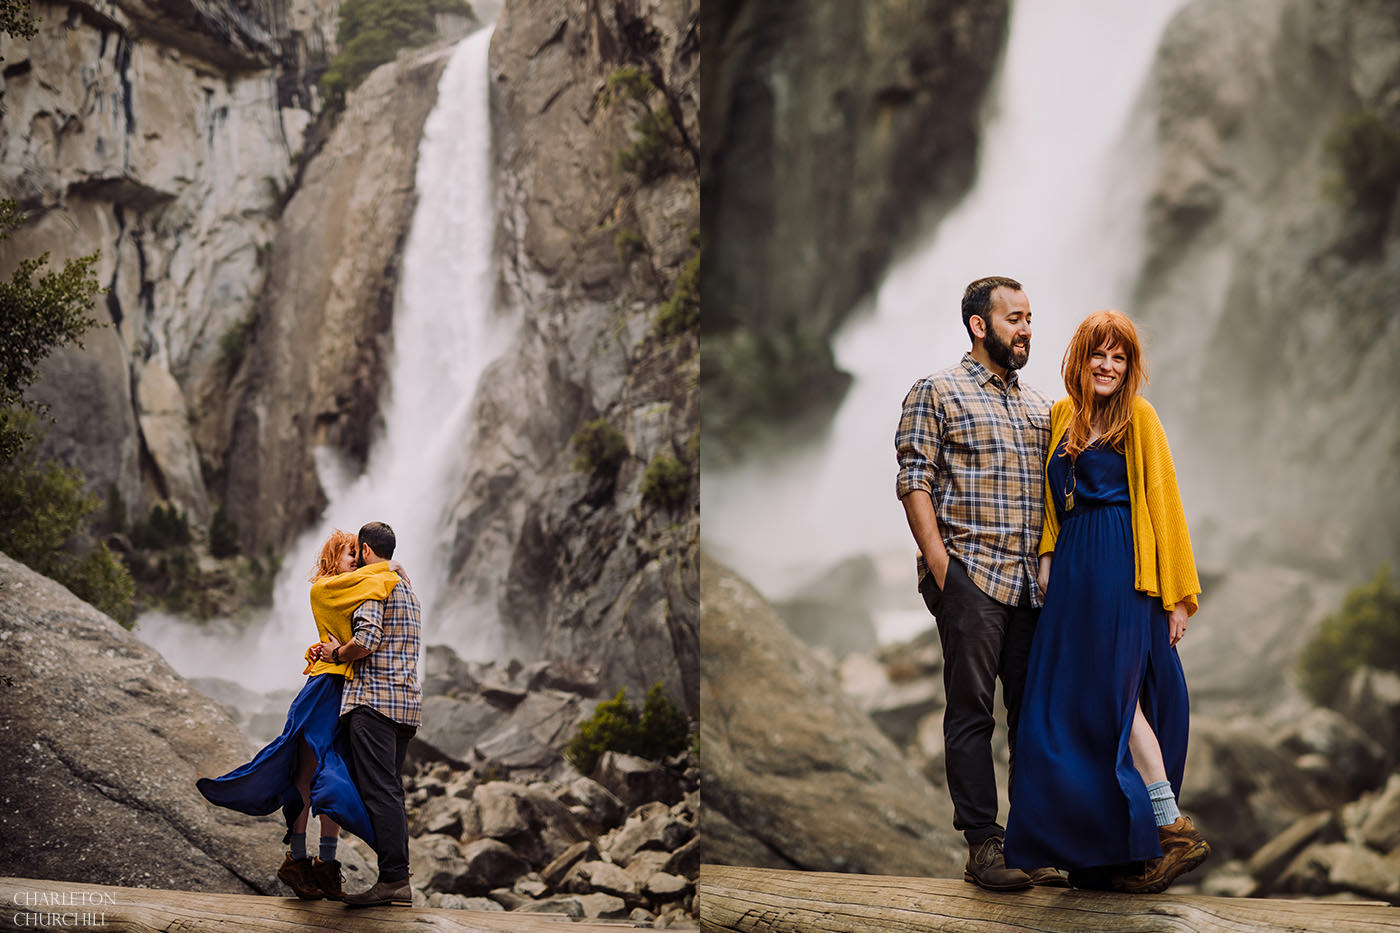 waterfalls at yosemite for an adventure engagement session wearing boho style blue and yellow